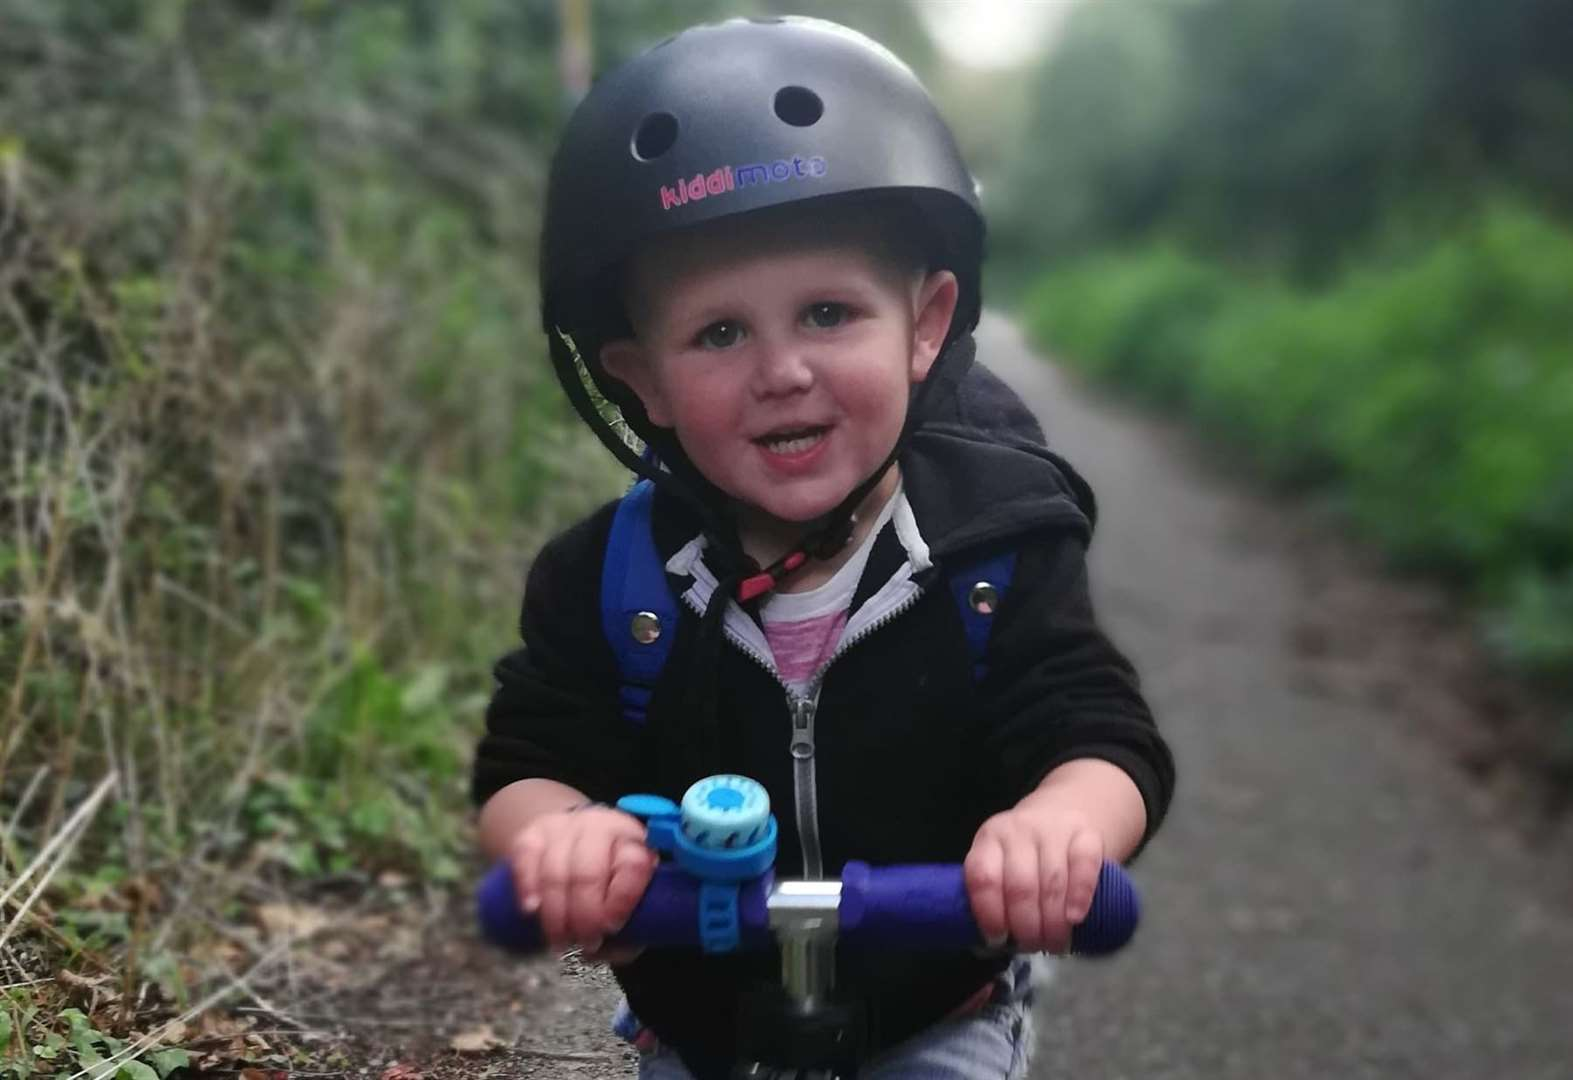 Two-year-old hit by overtaking car suffers head injury